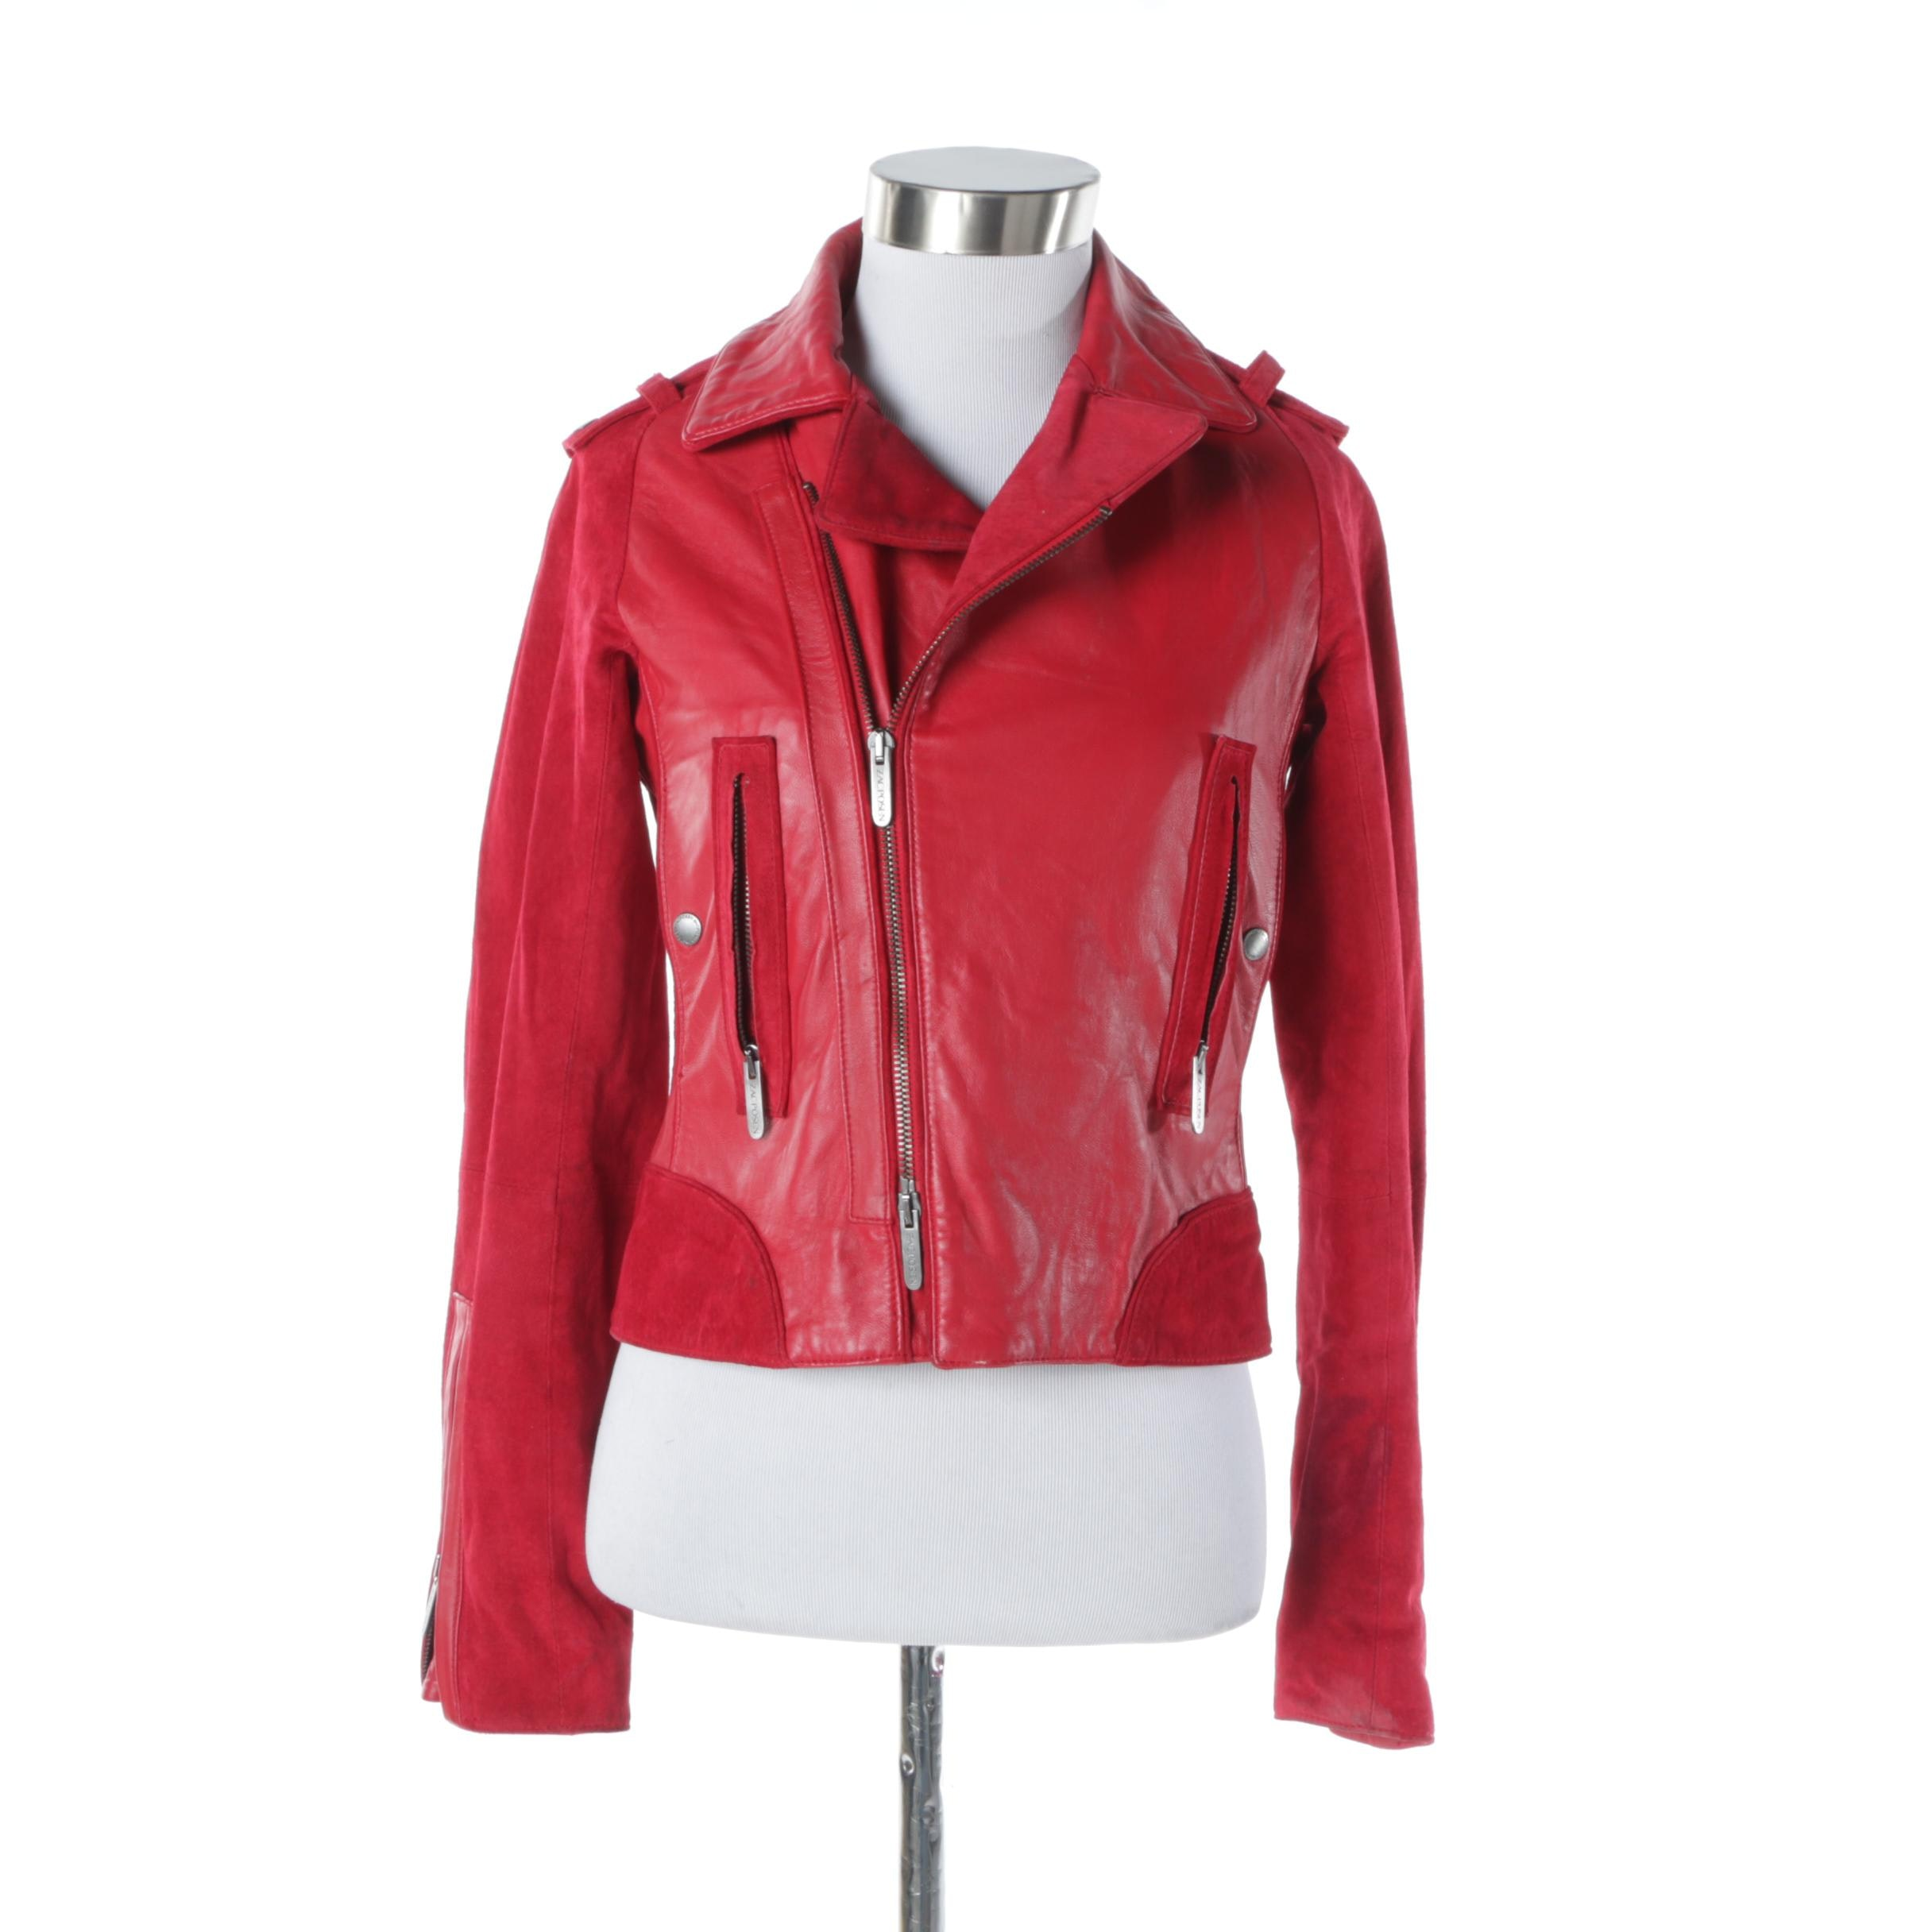 Zac Posen for Target Red Leather and Suede Moto Jacket